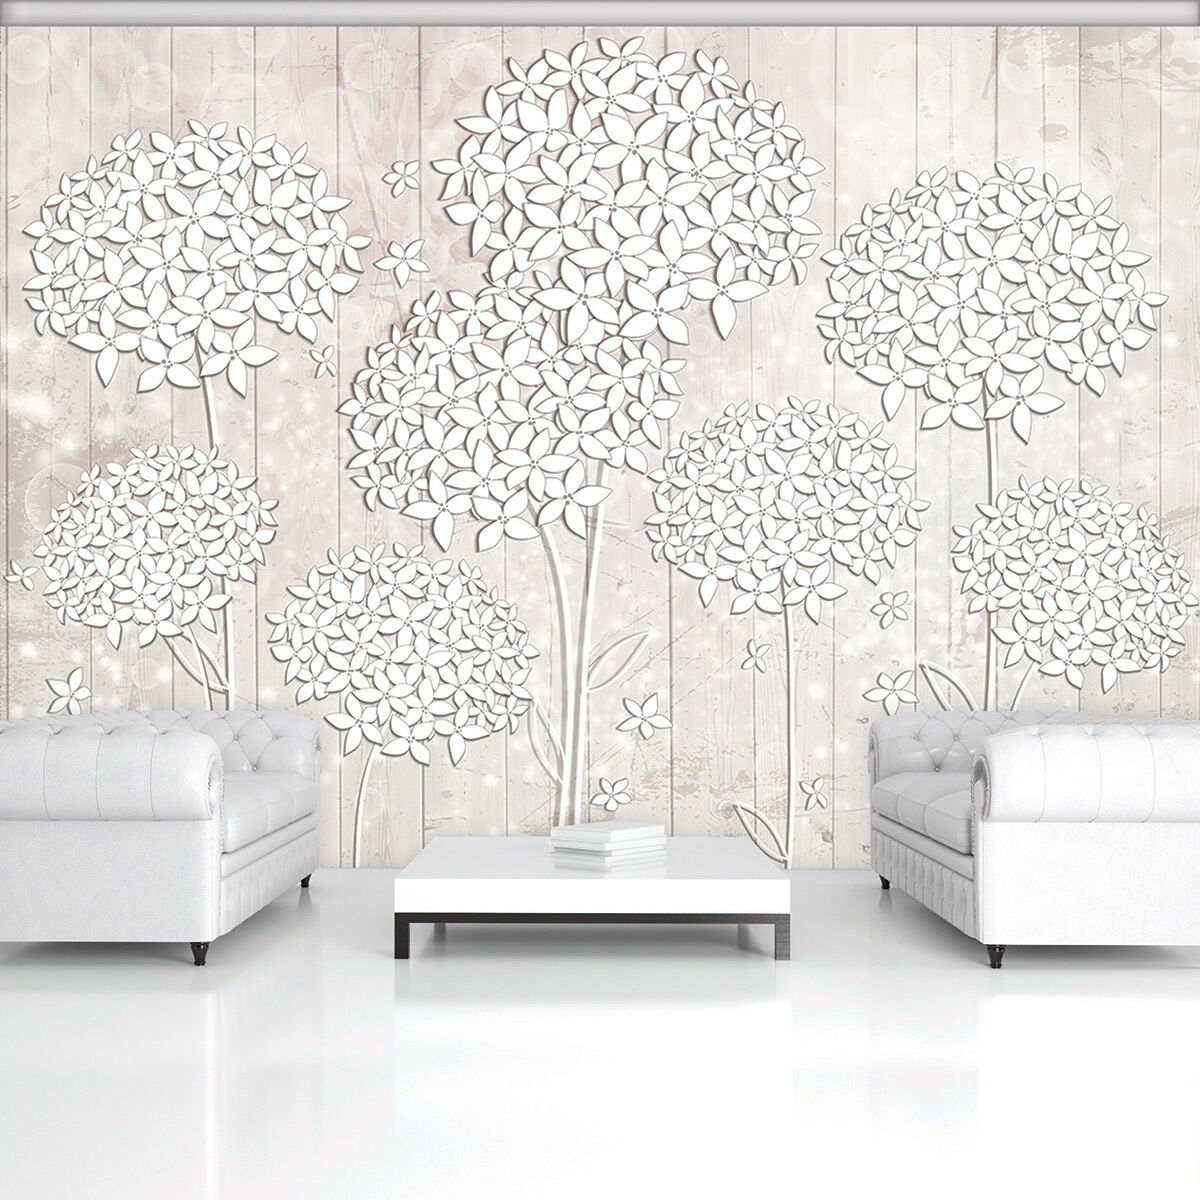 bild poster wandbild tapeten foto weiss blumen pusteblume creme holz 3fx3502p8 eur 39 90. Black Bedroom Furniture Sets. Home Design Ideas